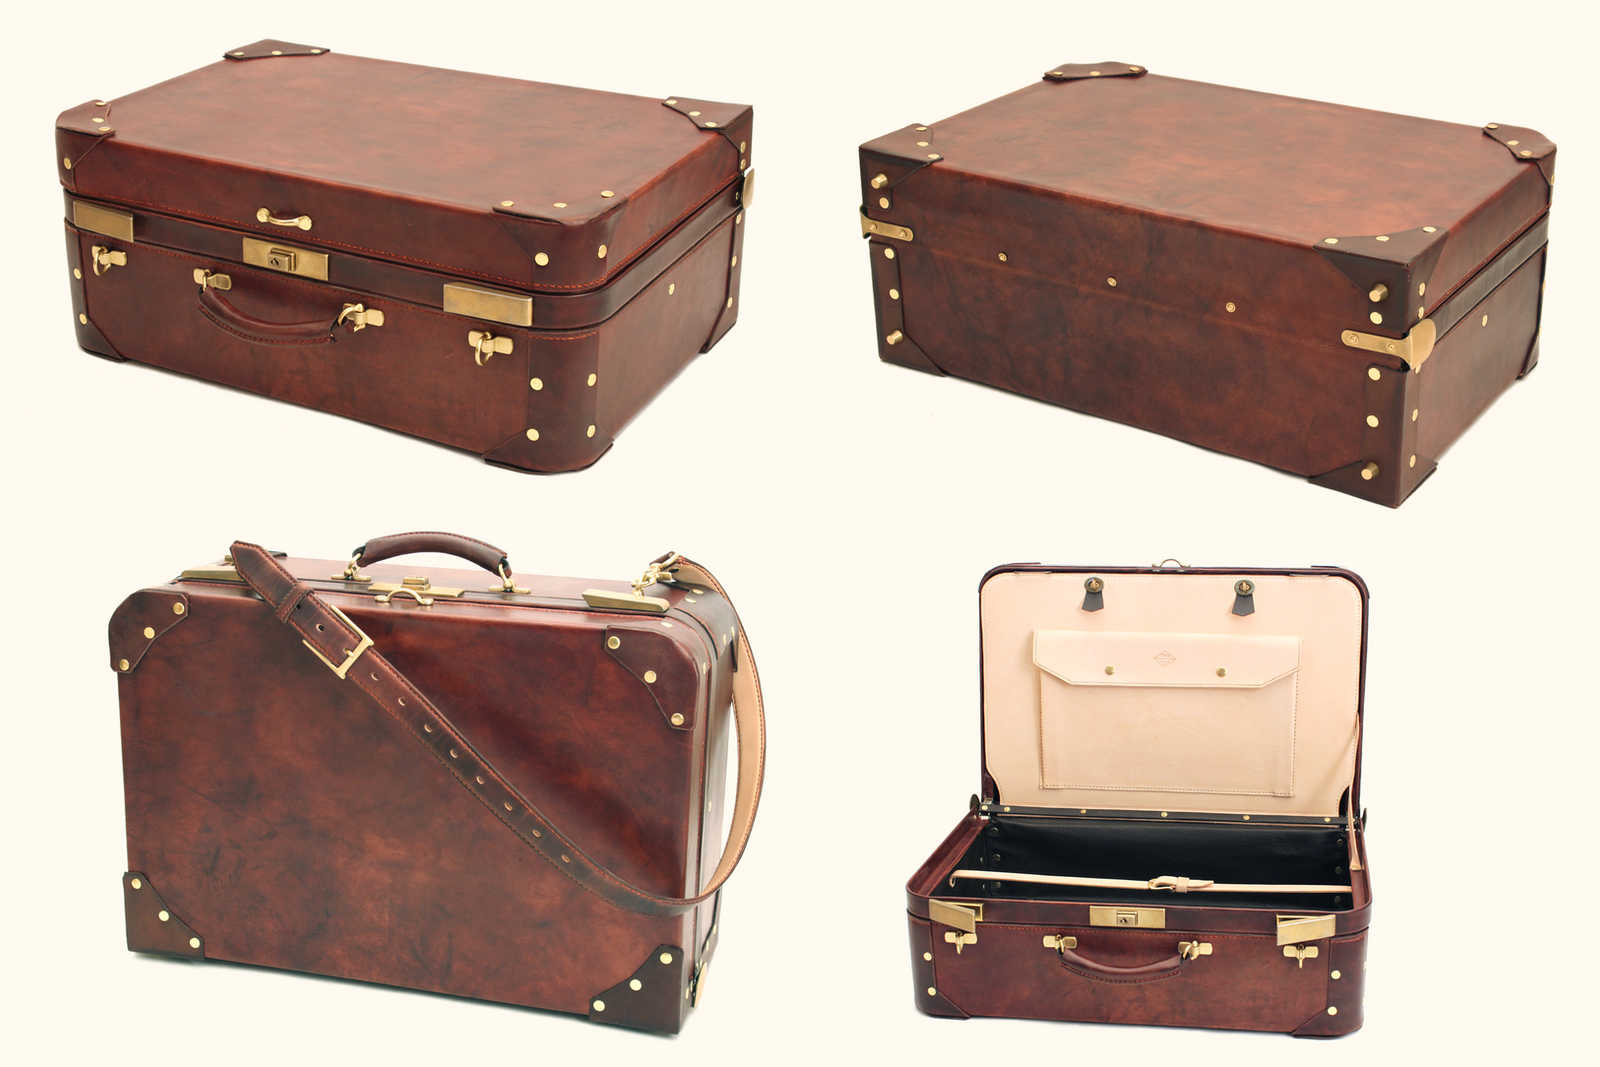 travel_case_by_marcusstratus-d68qnbc.png